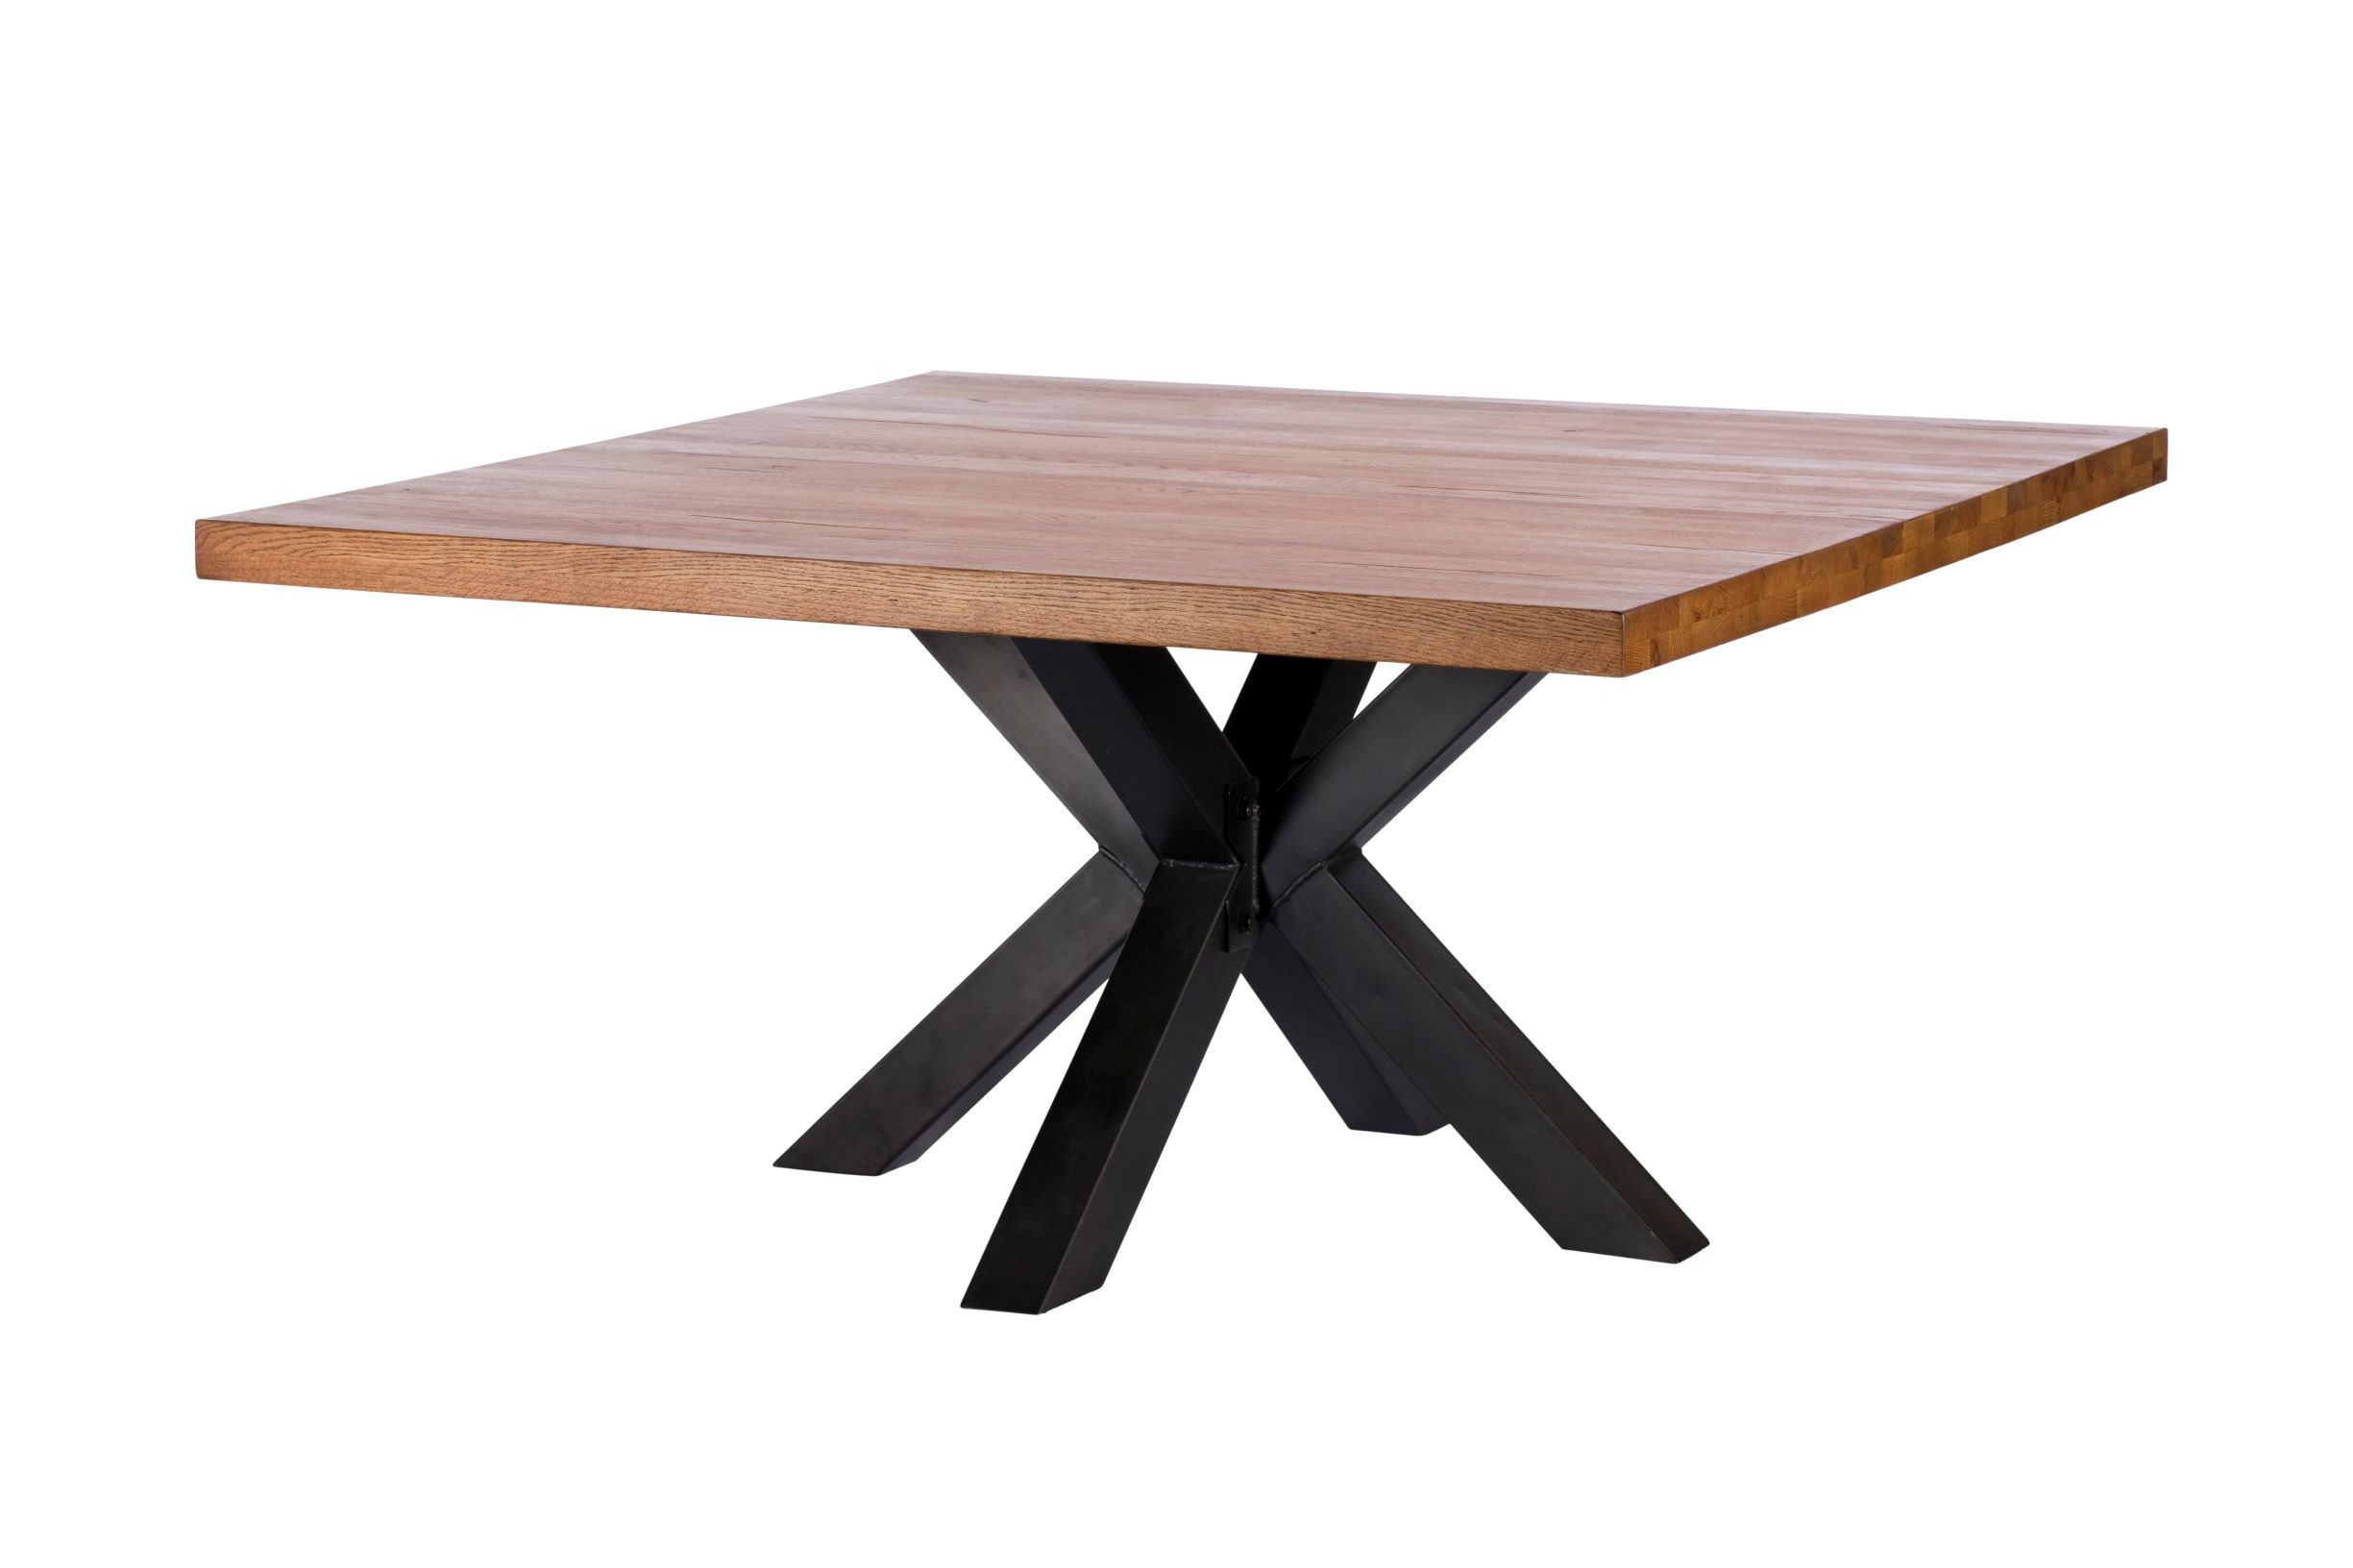 CORMAR OILED OAK SQUARE DINING TABLE - L150cm x D150cm x H77cm